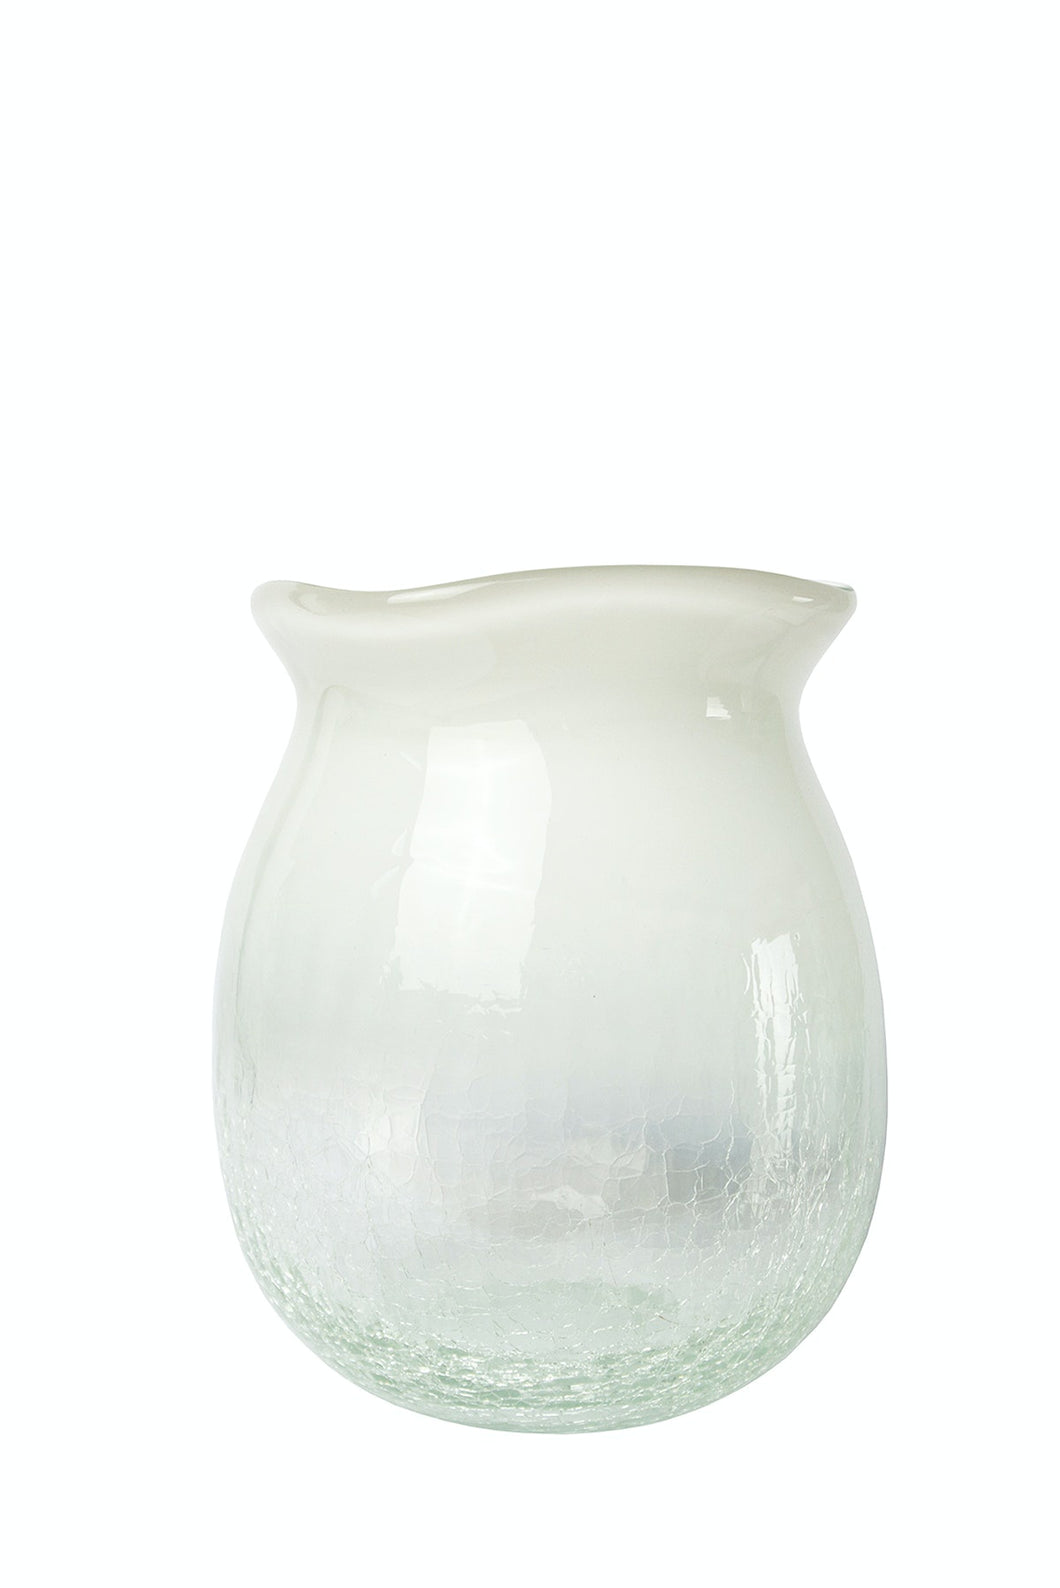 Vase - Shaded White - 22cm